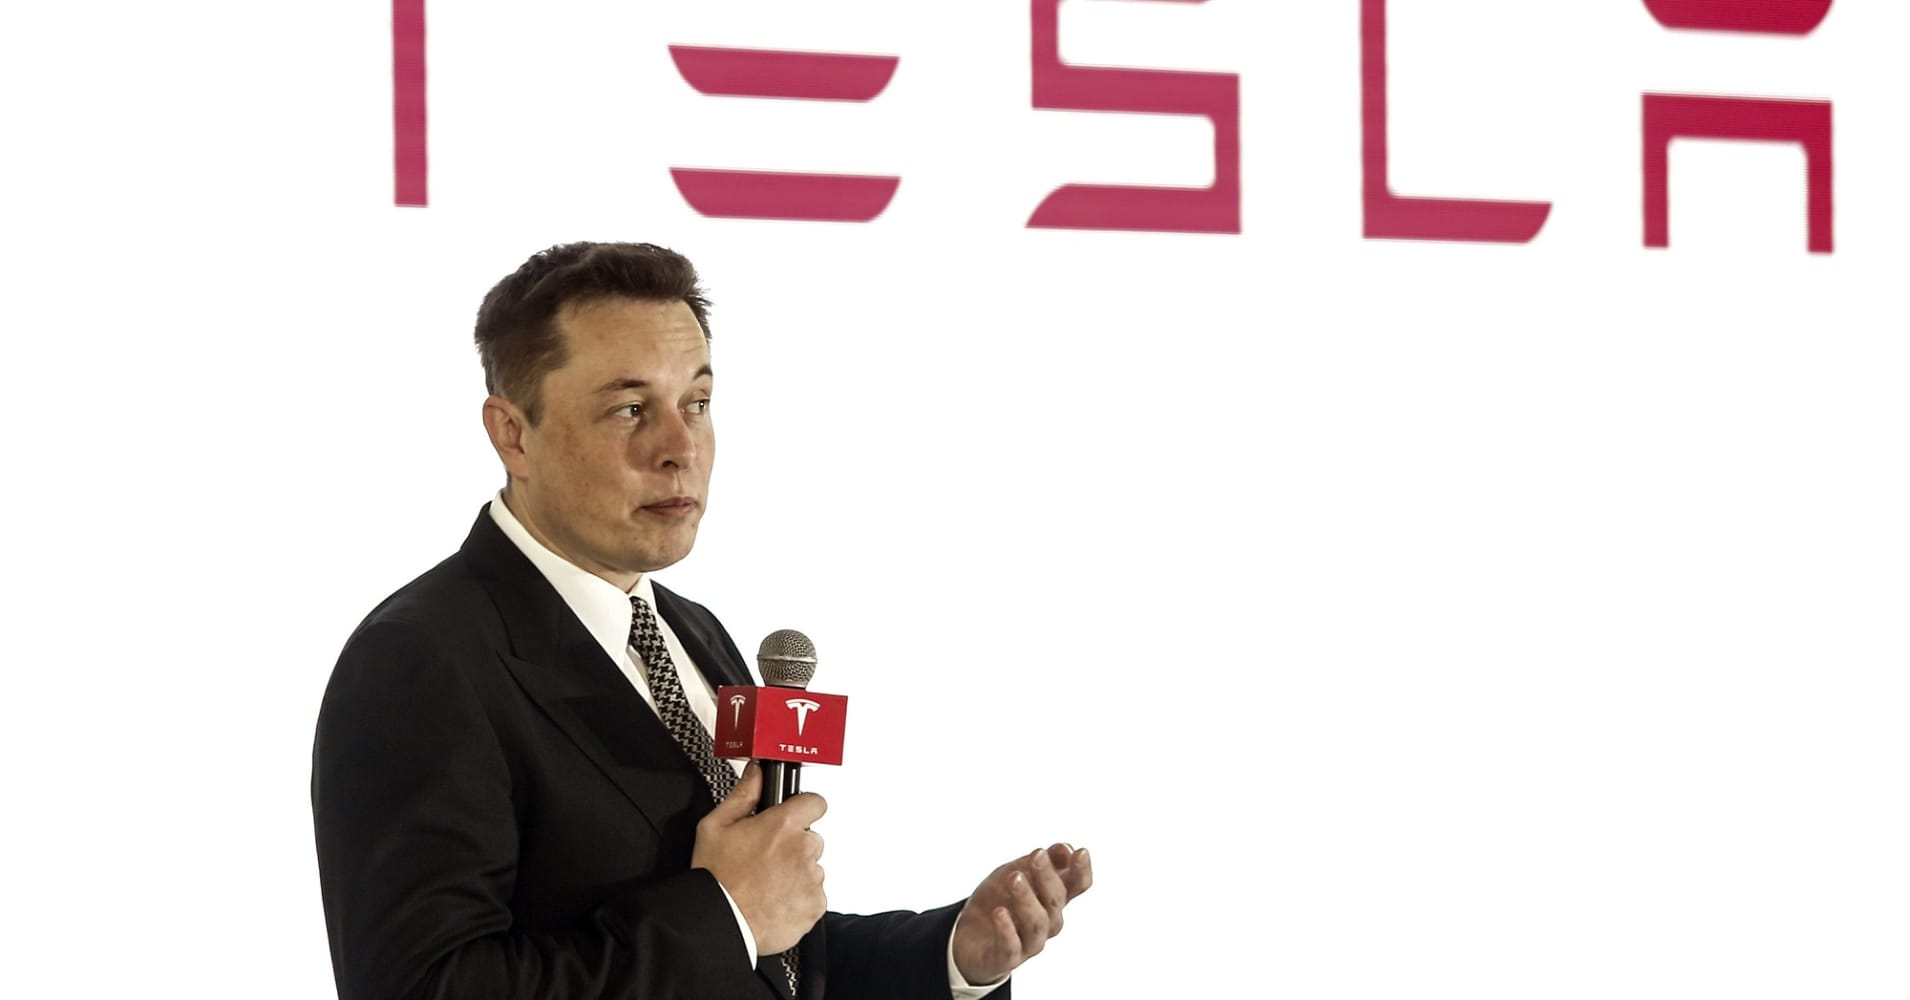 Elon Musk, Tesla CEO,  addresses a press conference in October 2015.